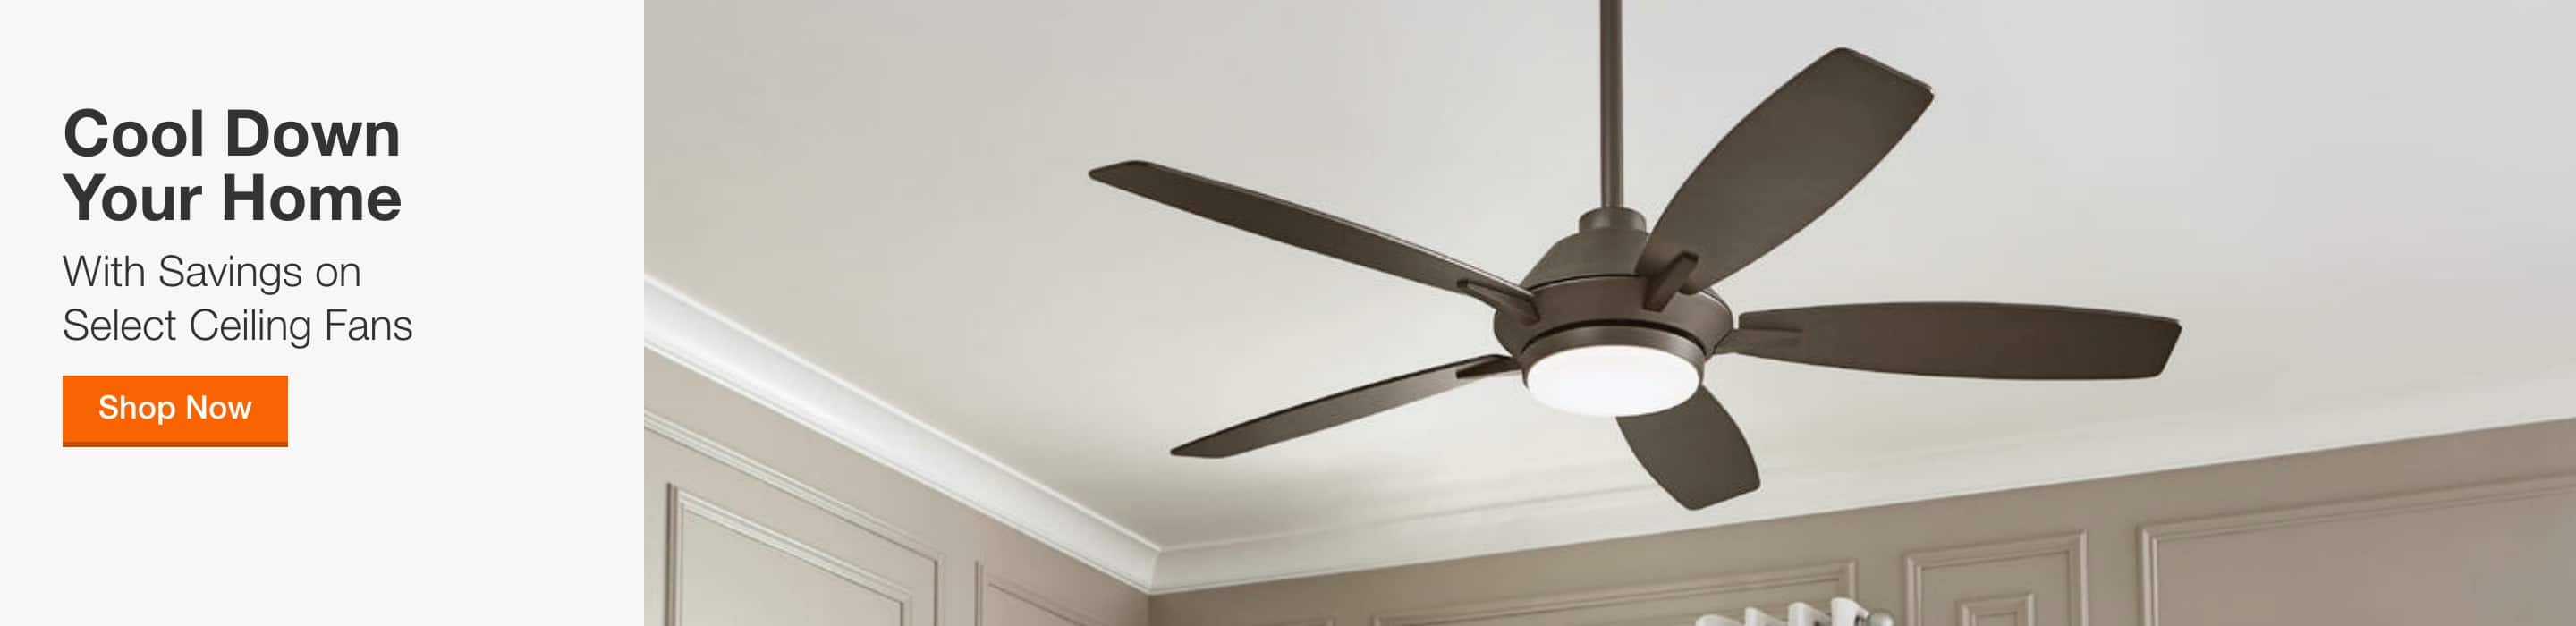 cool down your home with savings on select ceiling fans. shop now.